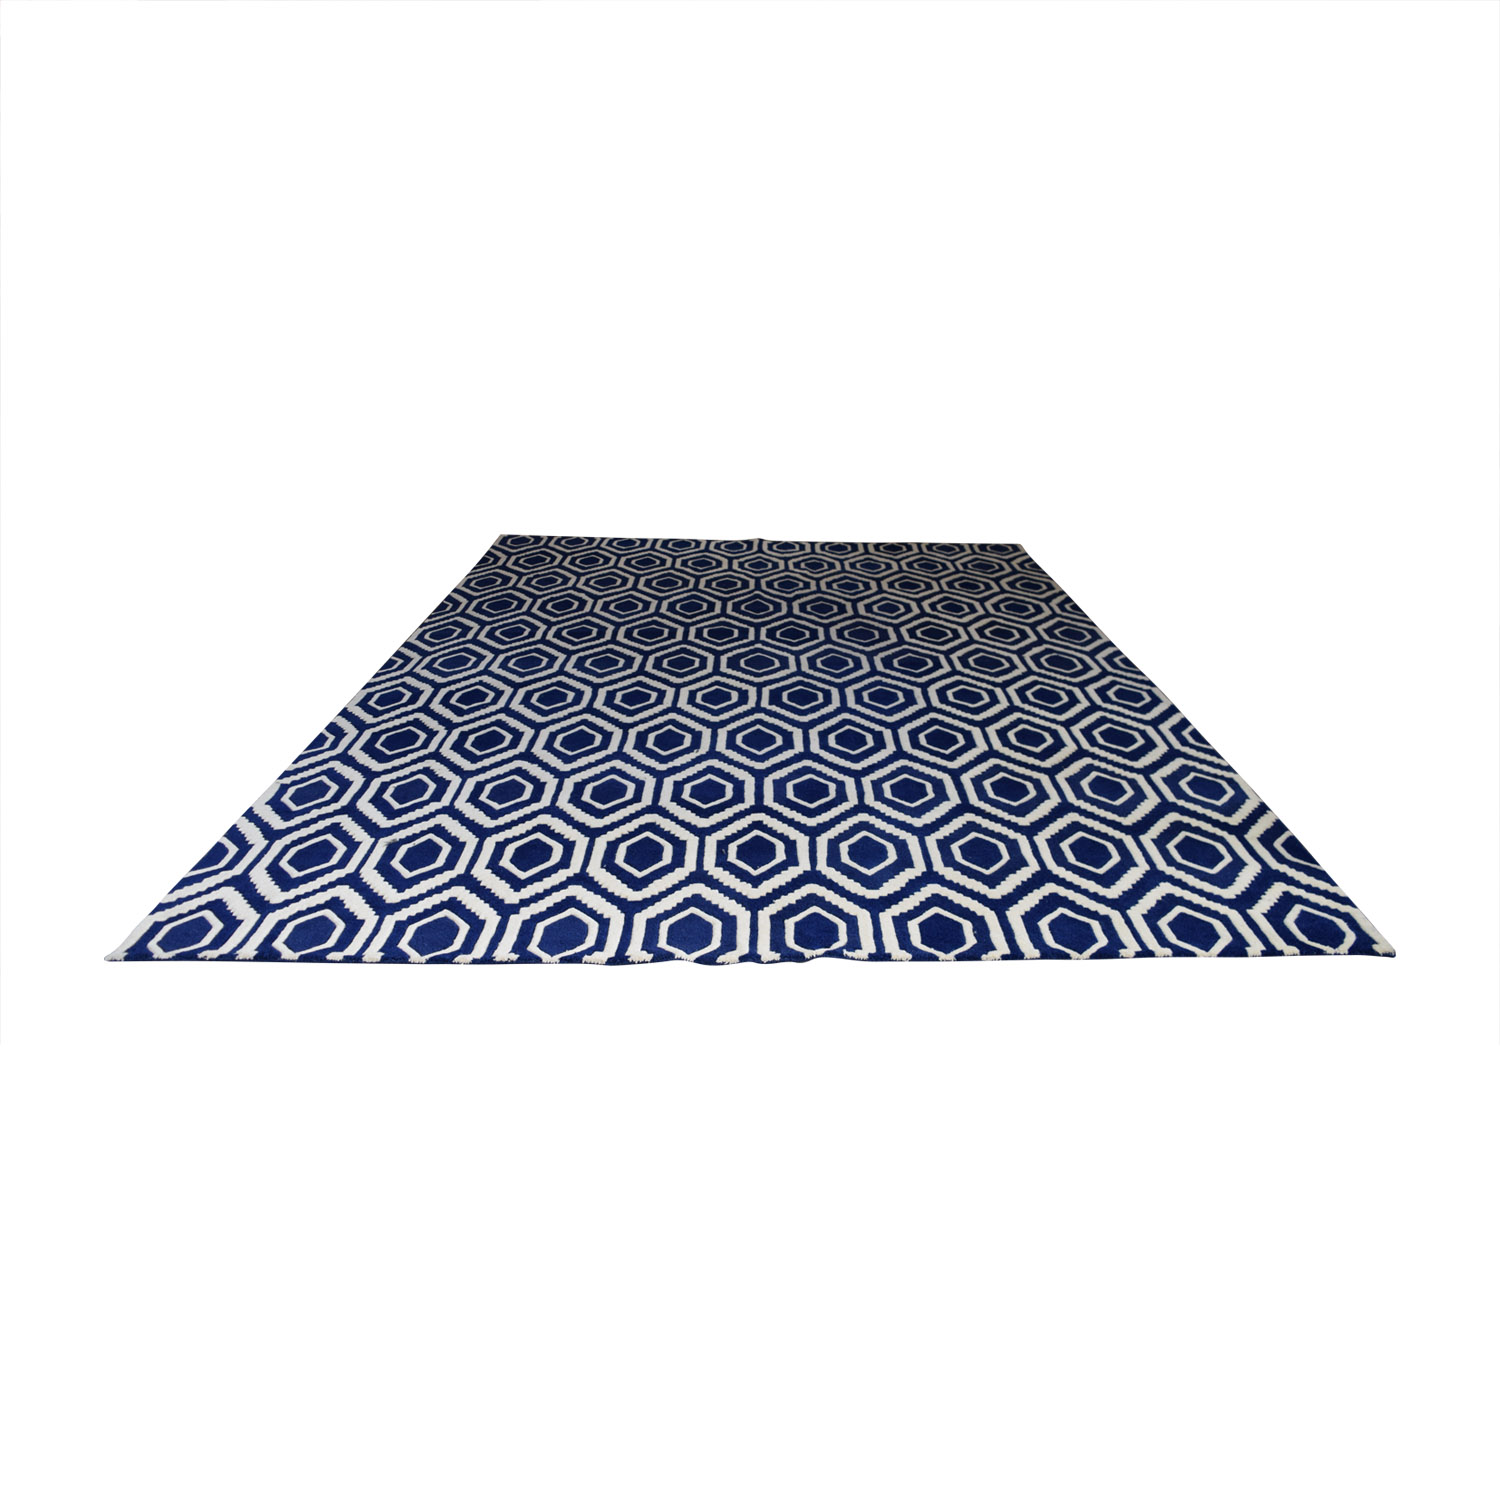 shop One Kings Lane Blue and White Patterned Rug One Kings Lane Decor